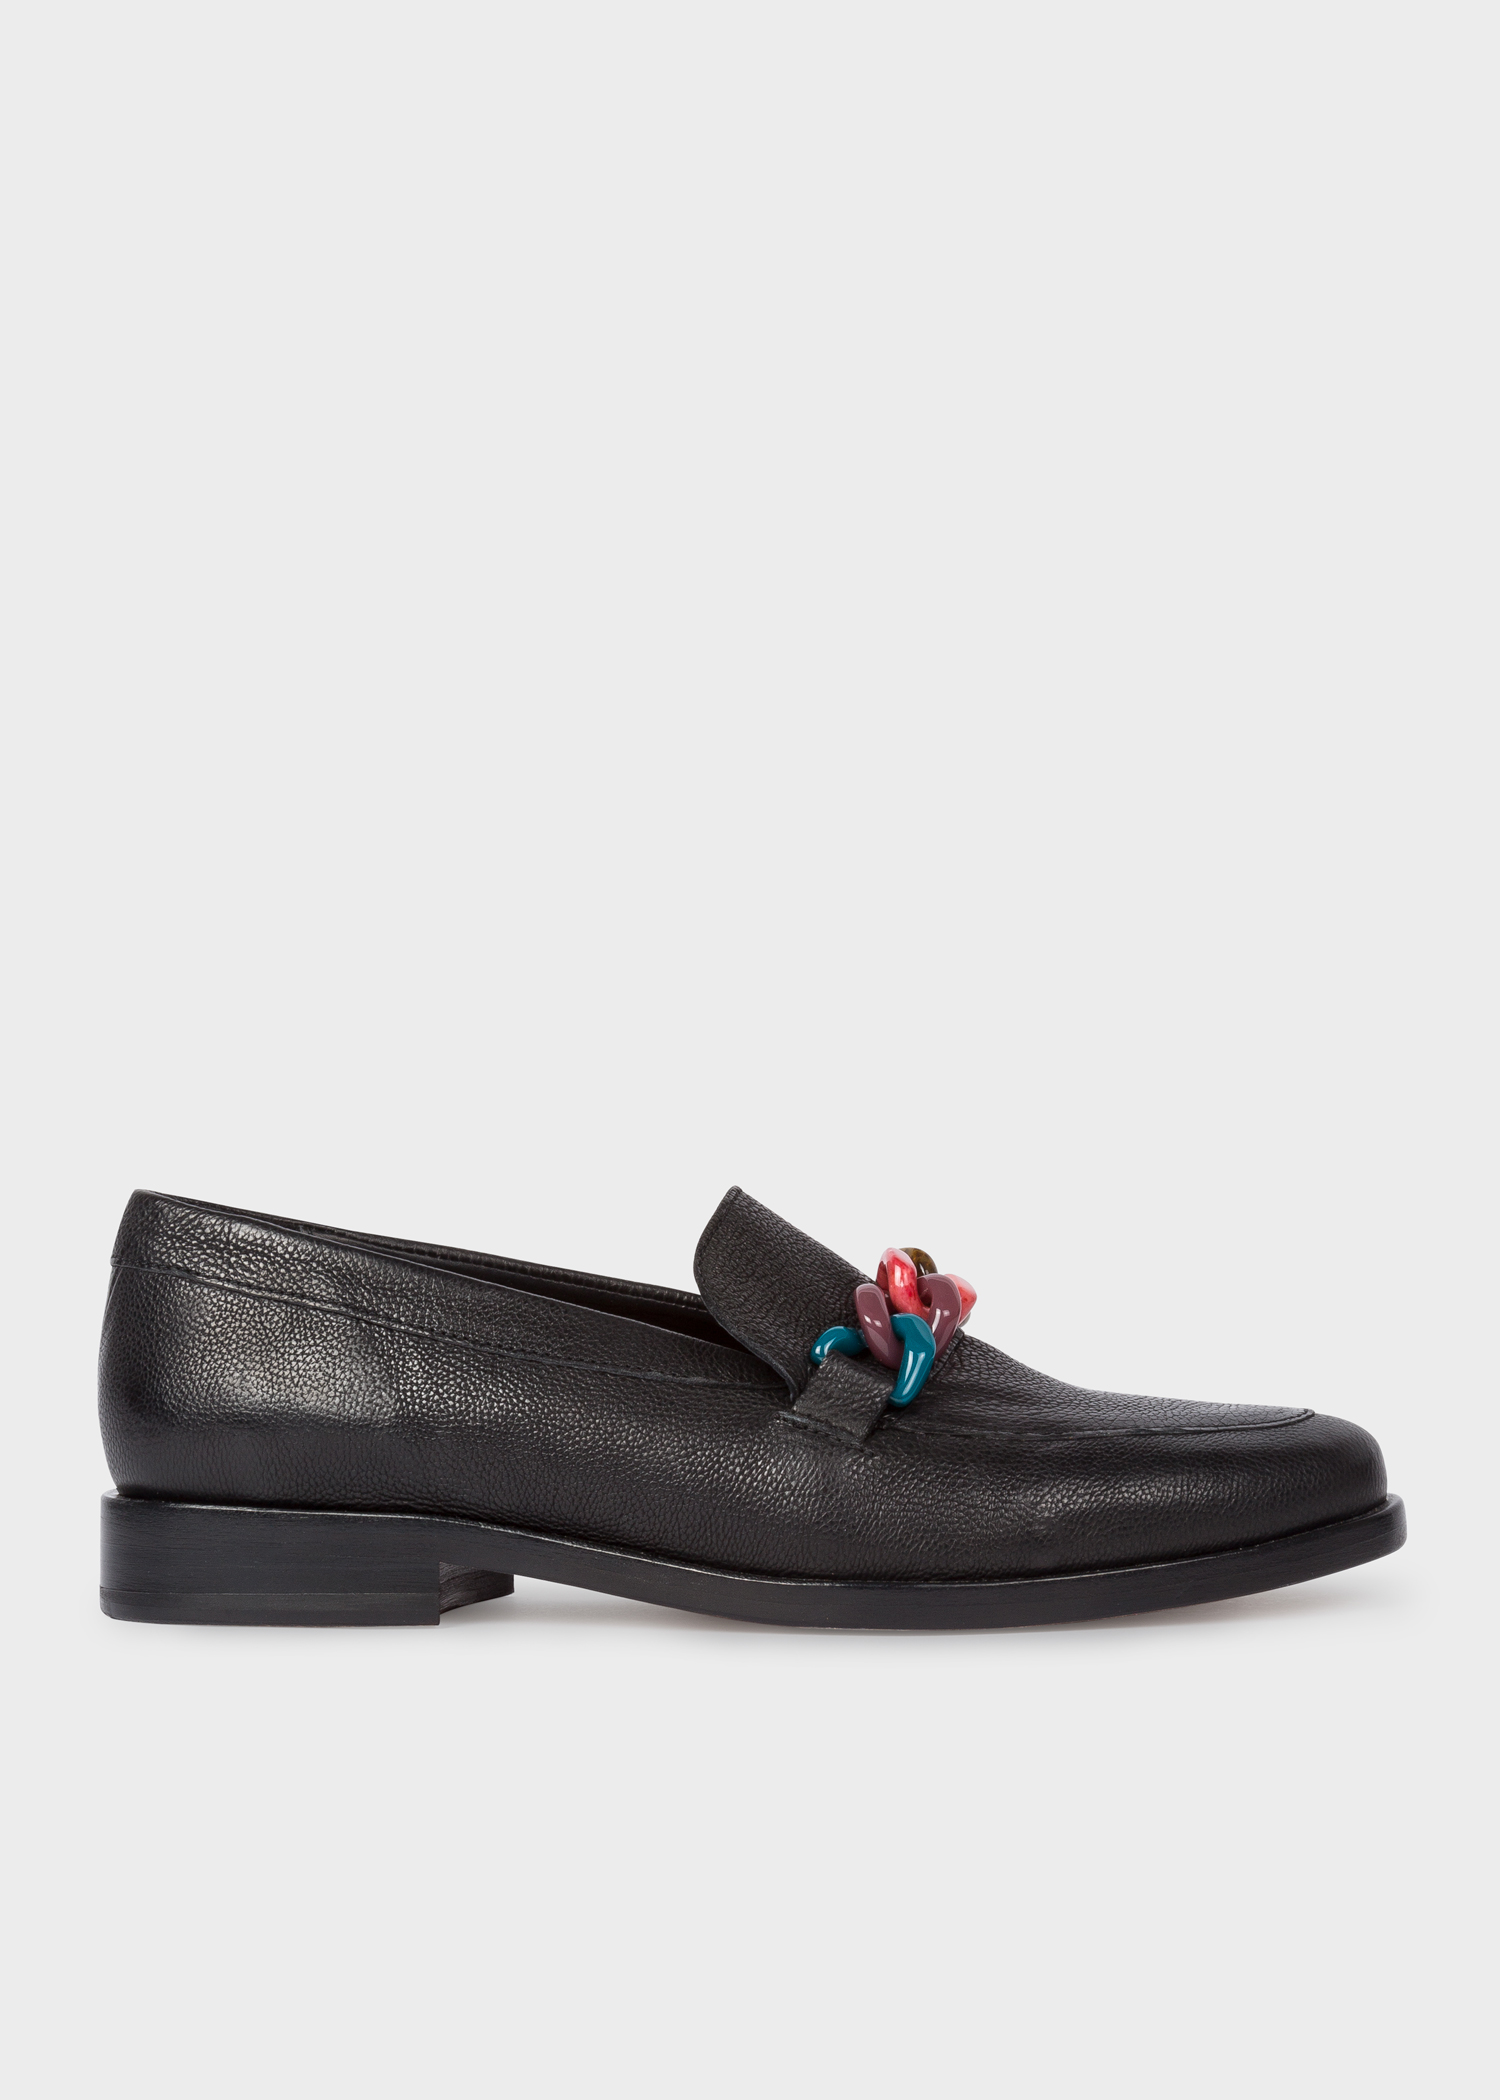 bae94f18b35d Side View - Women s Black Calf Leather  Cora  Loafers Paul Smith